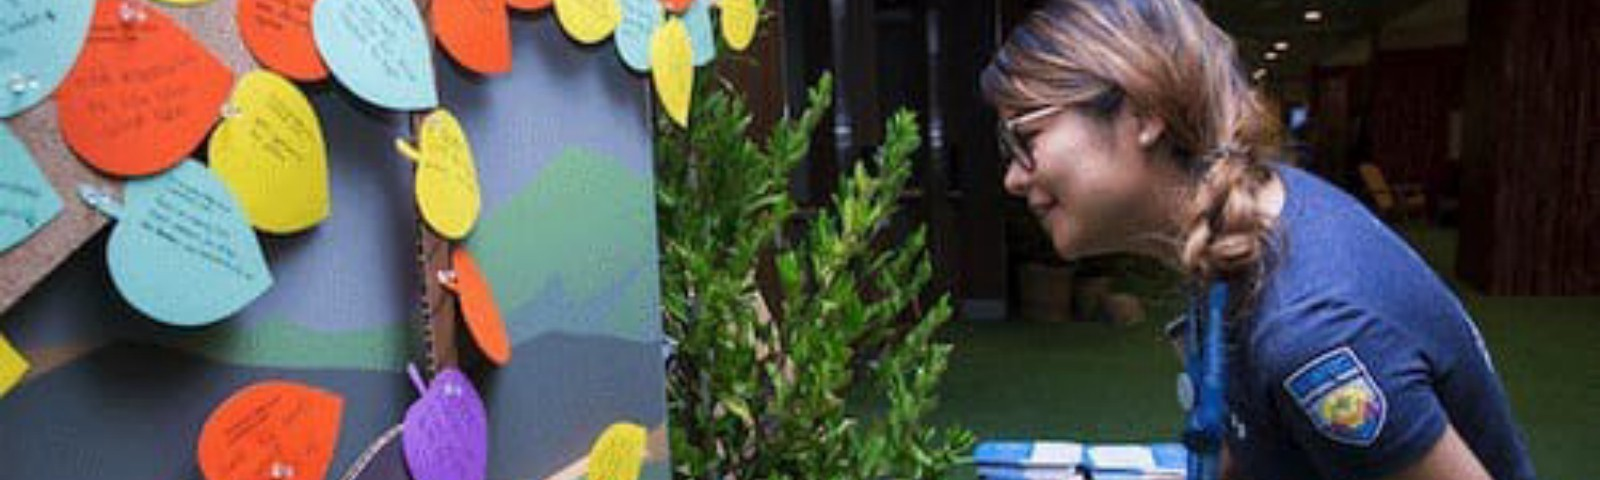 A Dreamforce employee peers over a desk to read text written on commitment leaves pinned to a tree.